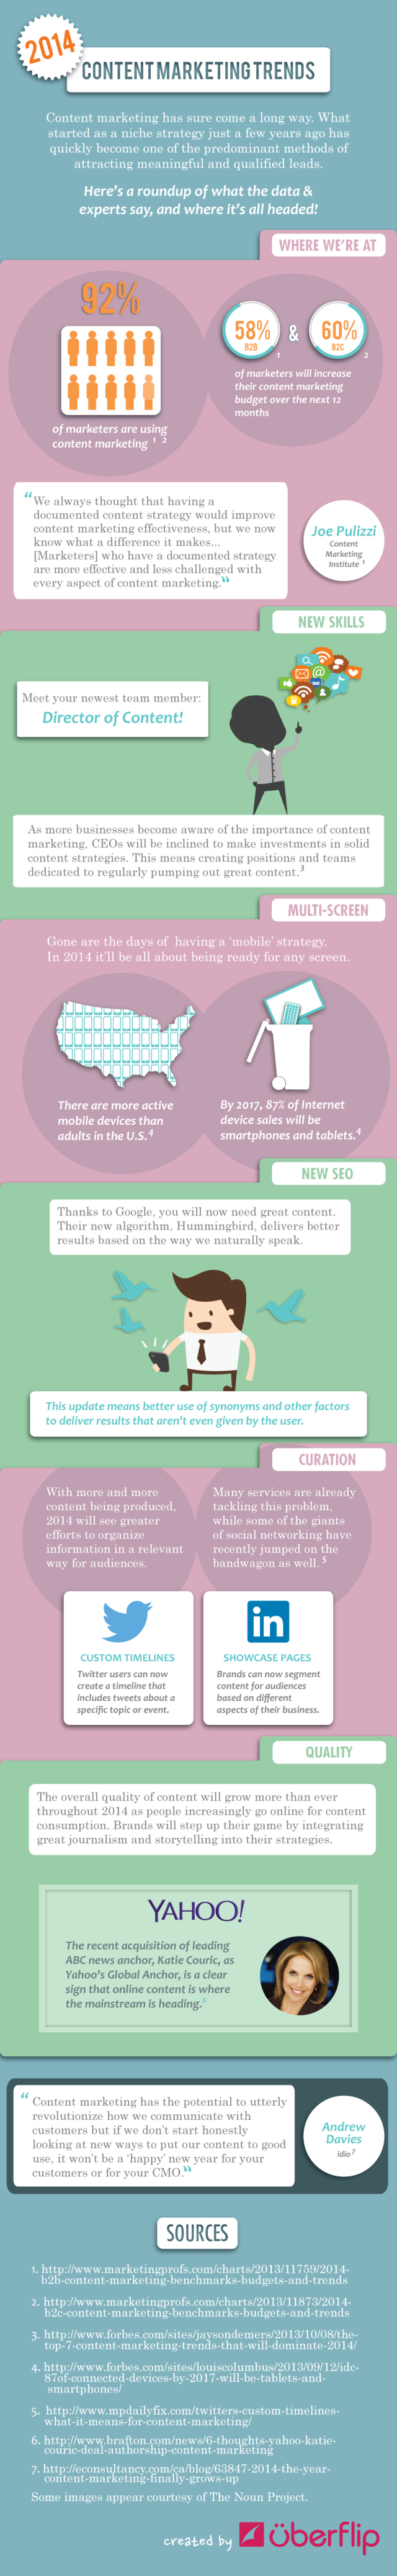 2014-content-marketing-trends-infographic-640x4150